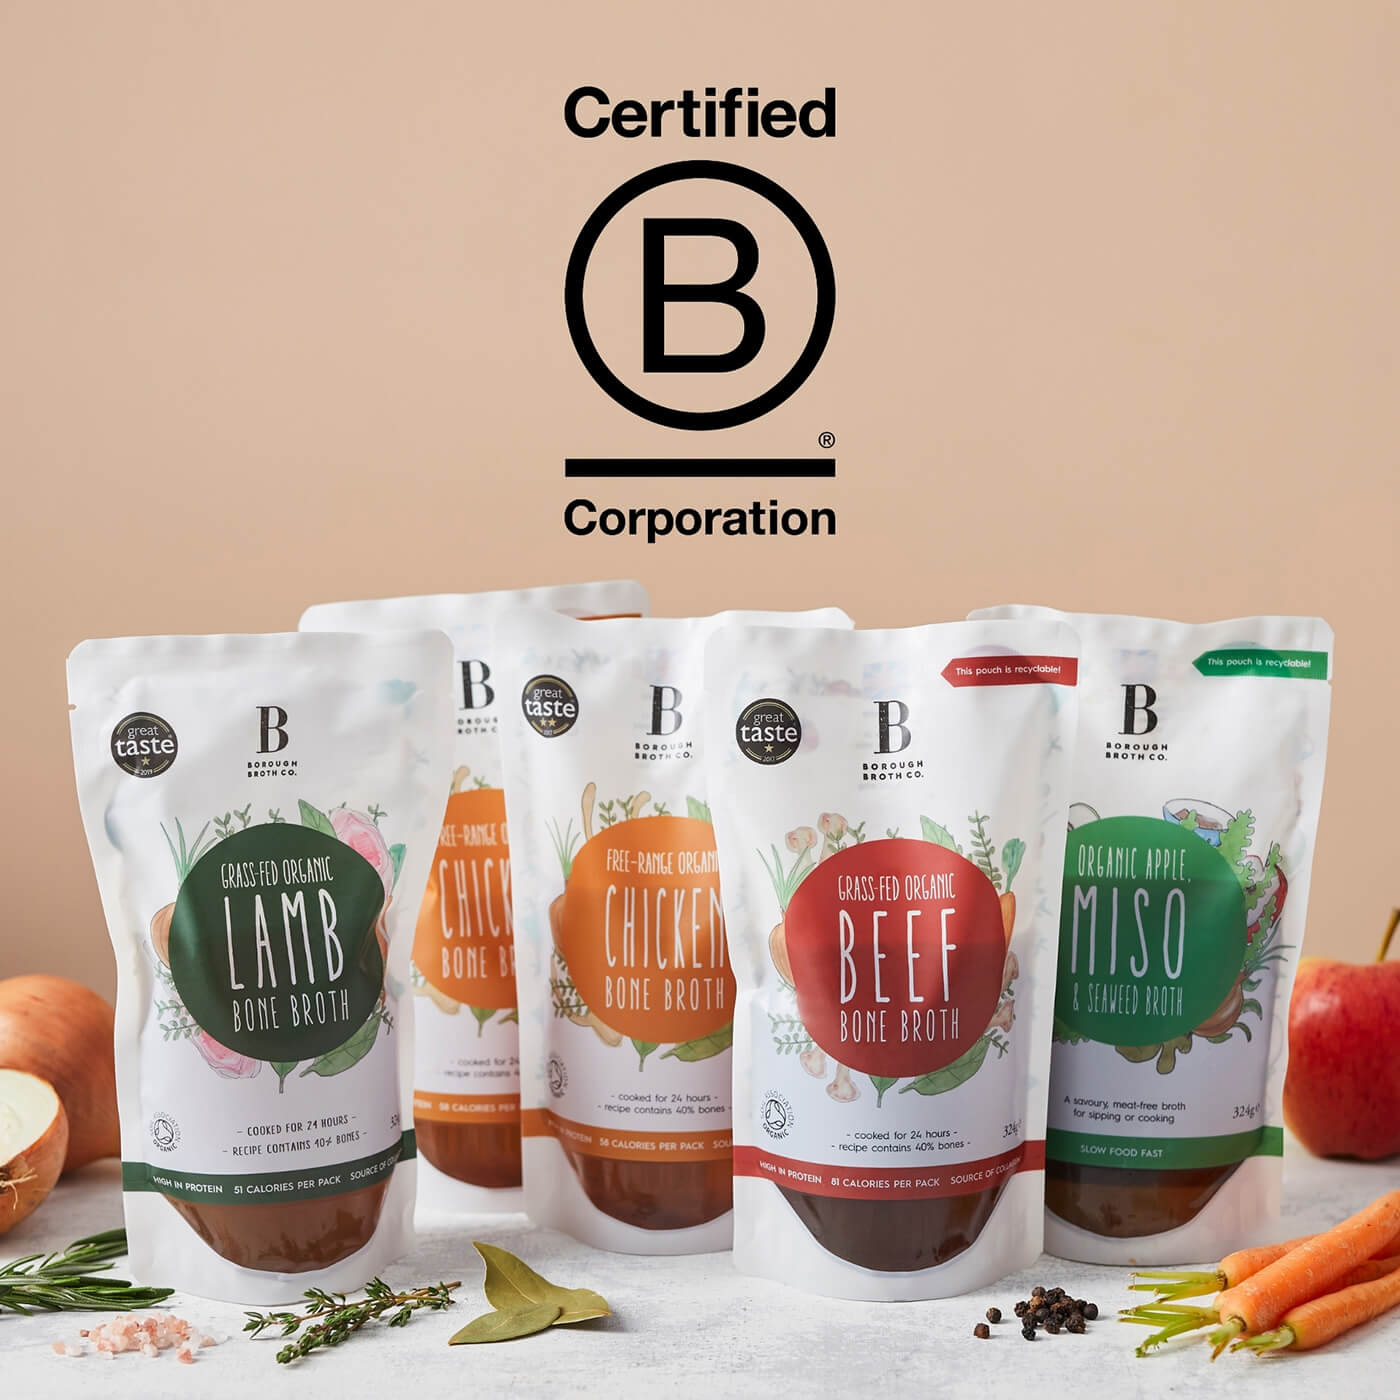 We're a B-Corp!